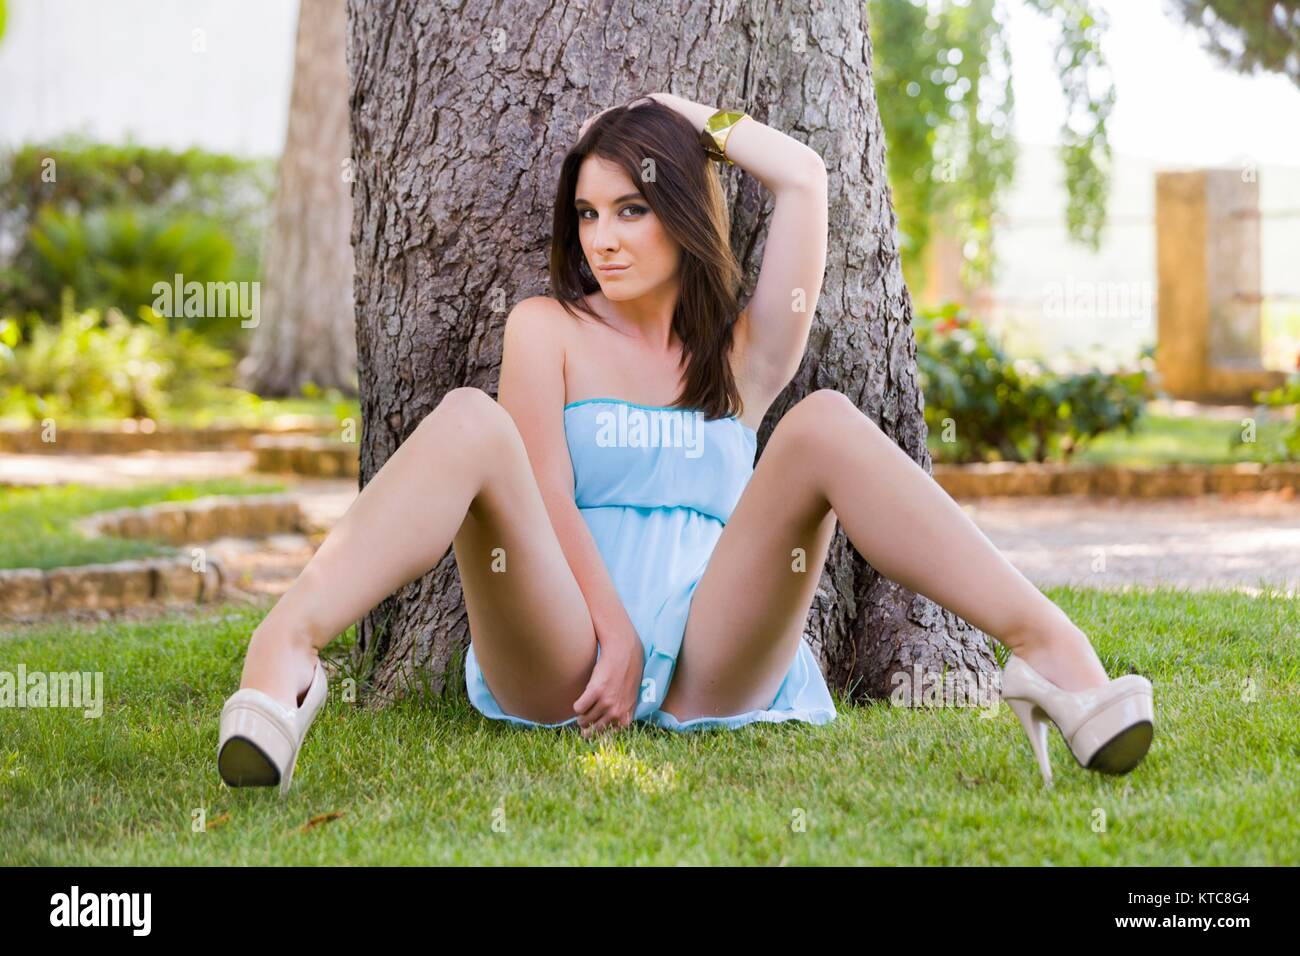 spread legs stock photos & spread legs stock images - alamy